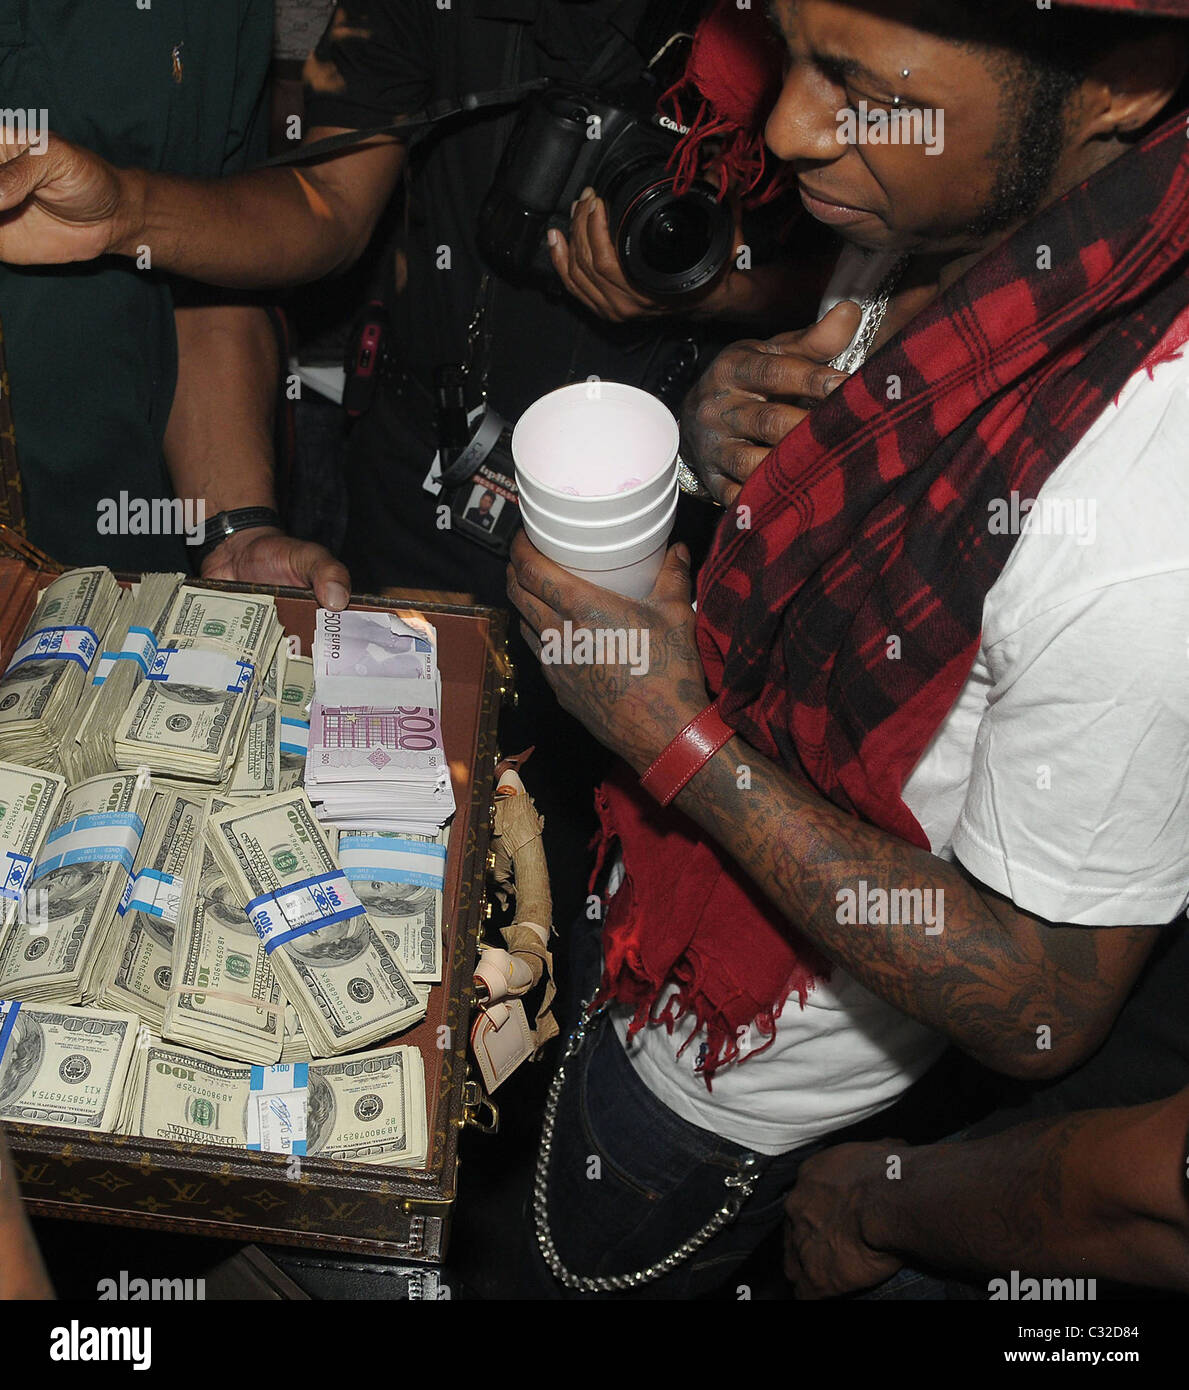 Lil Wayne Stunned By 1 Million Birthday Gift Boy LIL WAYNE Was Left When Mentor And Pal BIRDMAN Handed Him